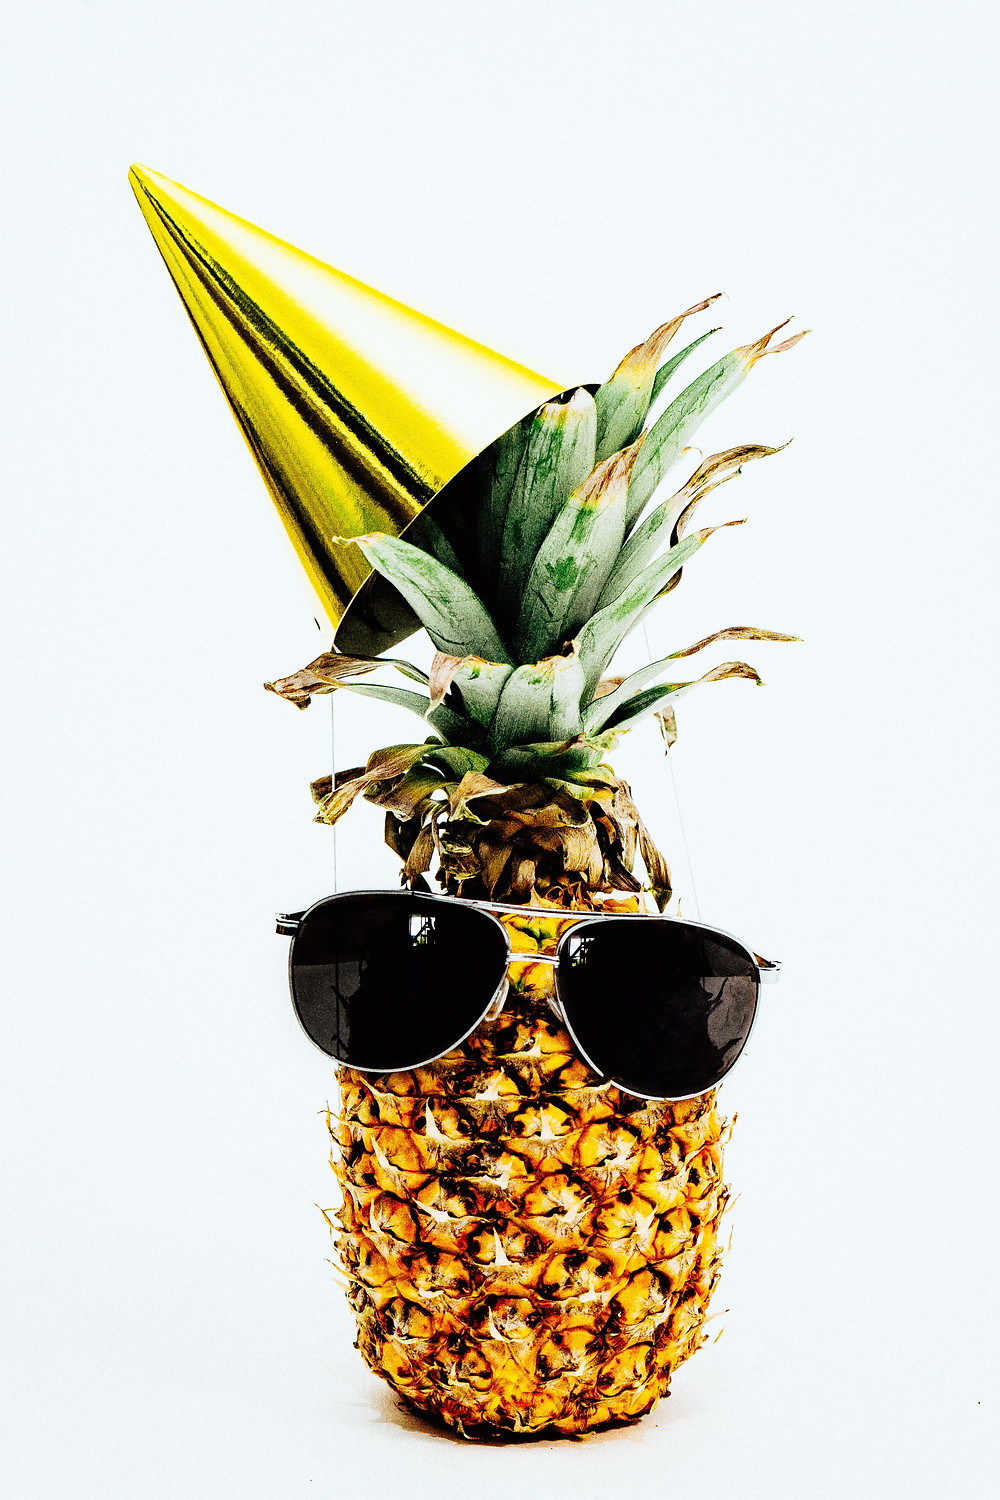 Party pineapple image from Freely